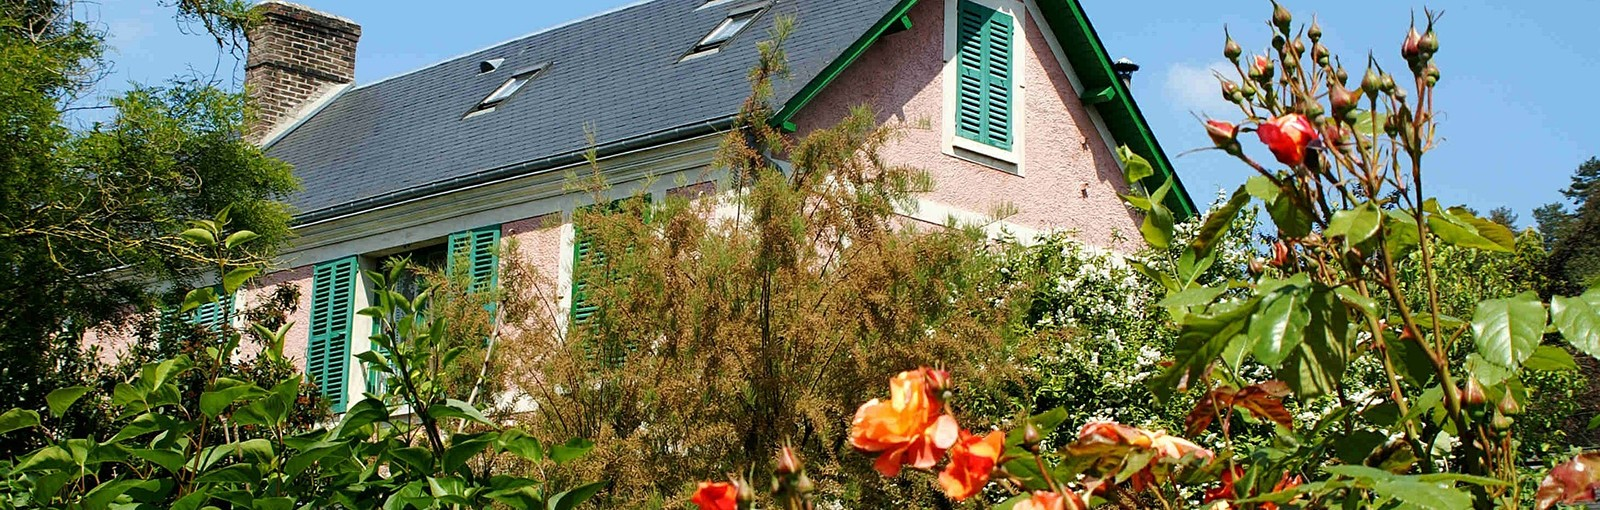 Tours Giverny - Half days - Day tours from Paris